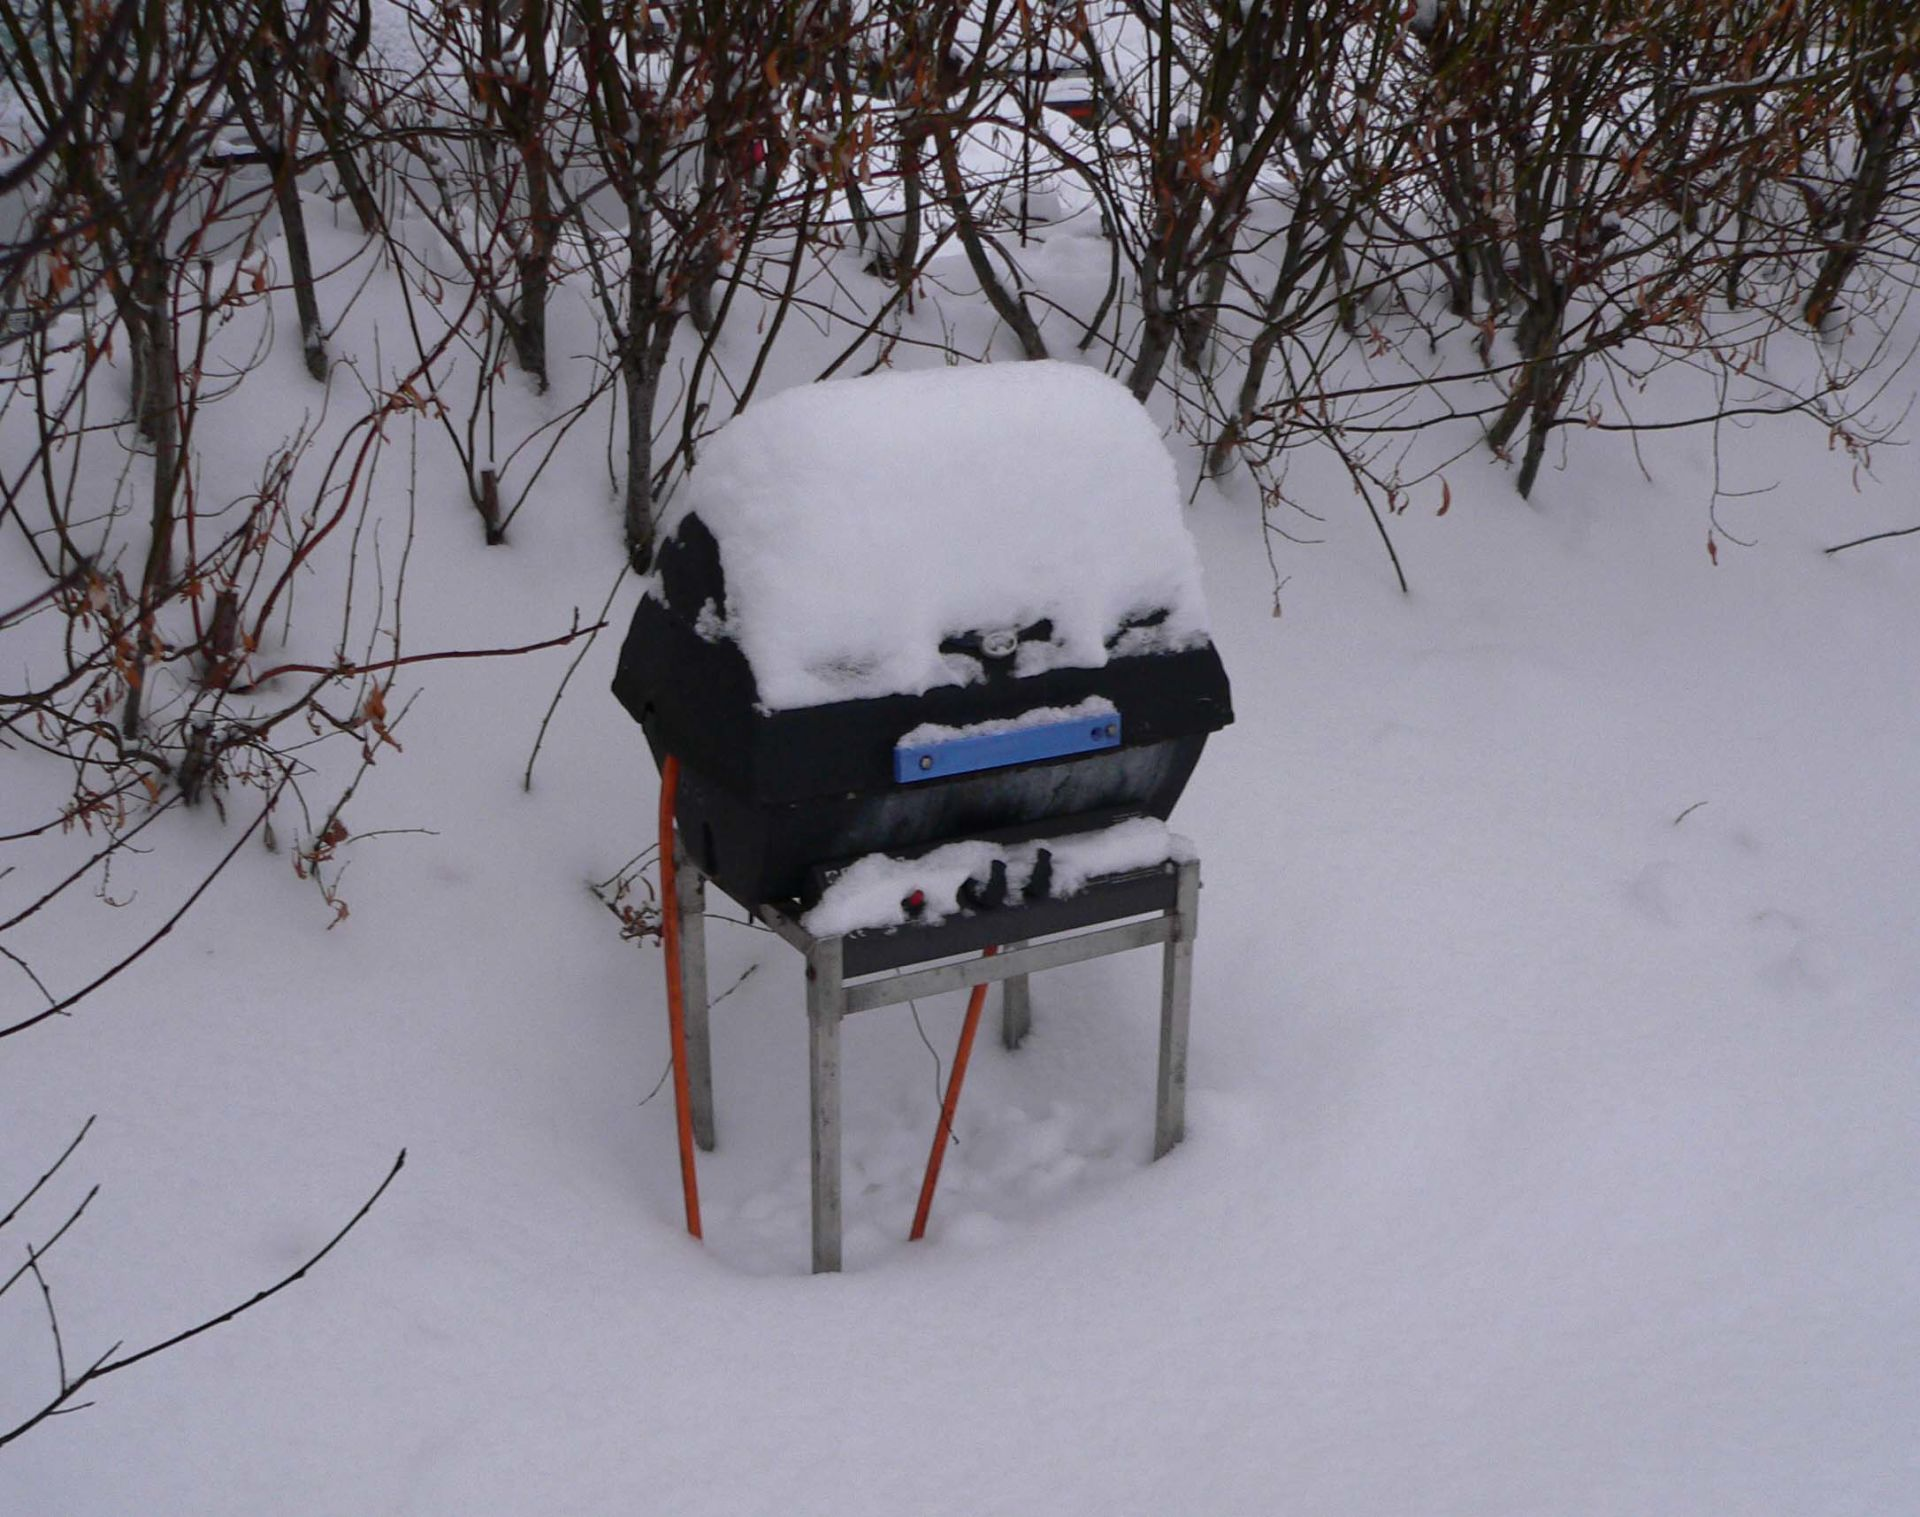 Winterize Your Outdoor Grill in 5 Easy Steps